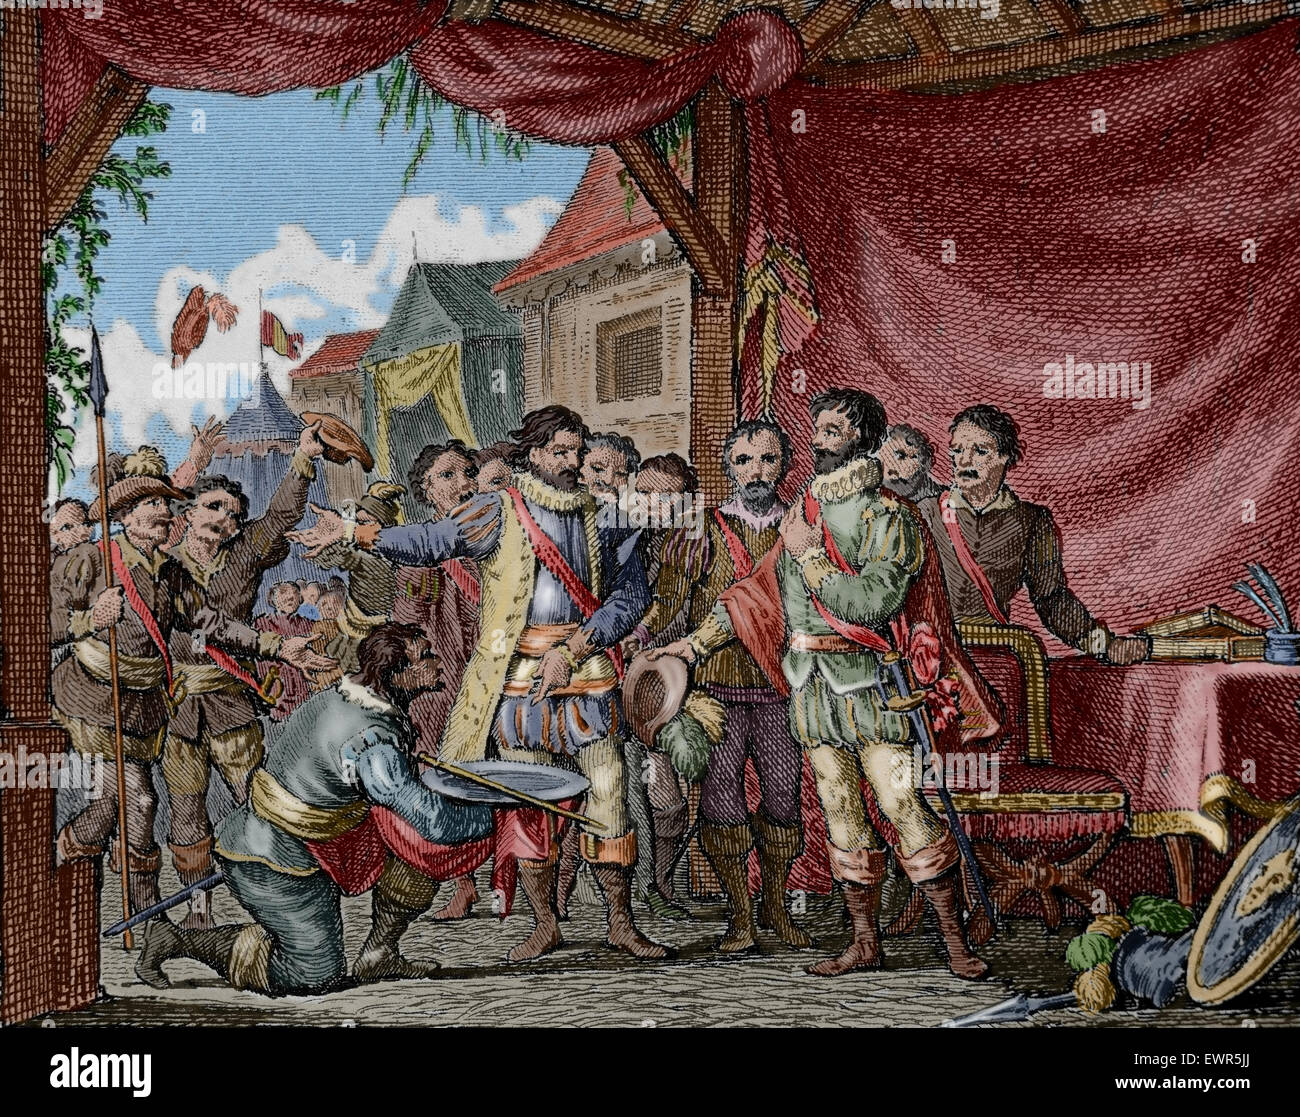 conquest of new spain a The true history of the conquest of new spain is an incredible story, by bernal diaz del castillo, of how a tiny band of bold spanish adventurers, led by the cunning and most ruthless commander, hernando cortez, toppled an empire of millions of people.